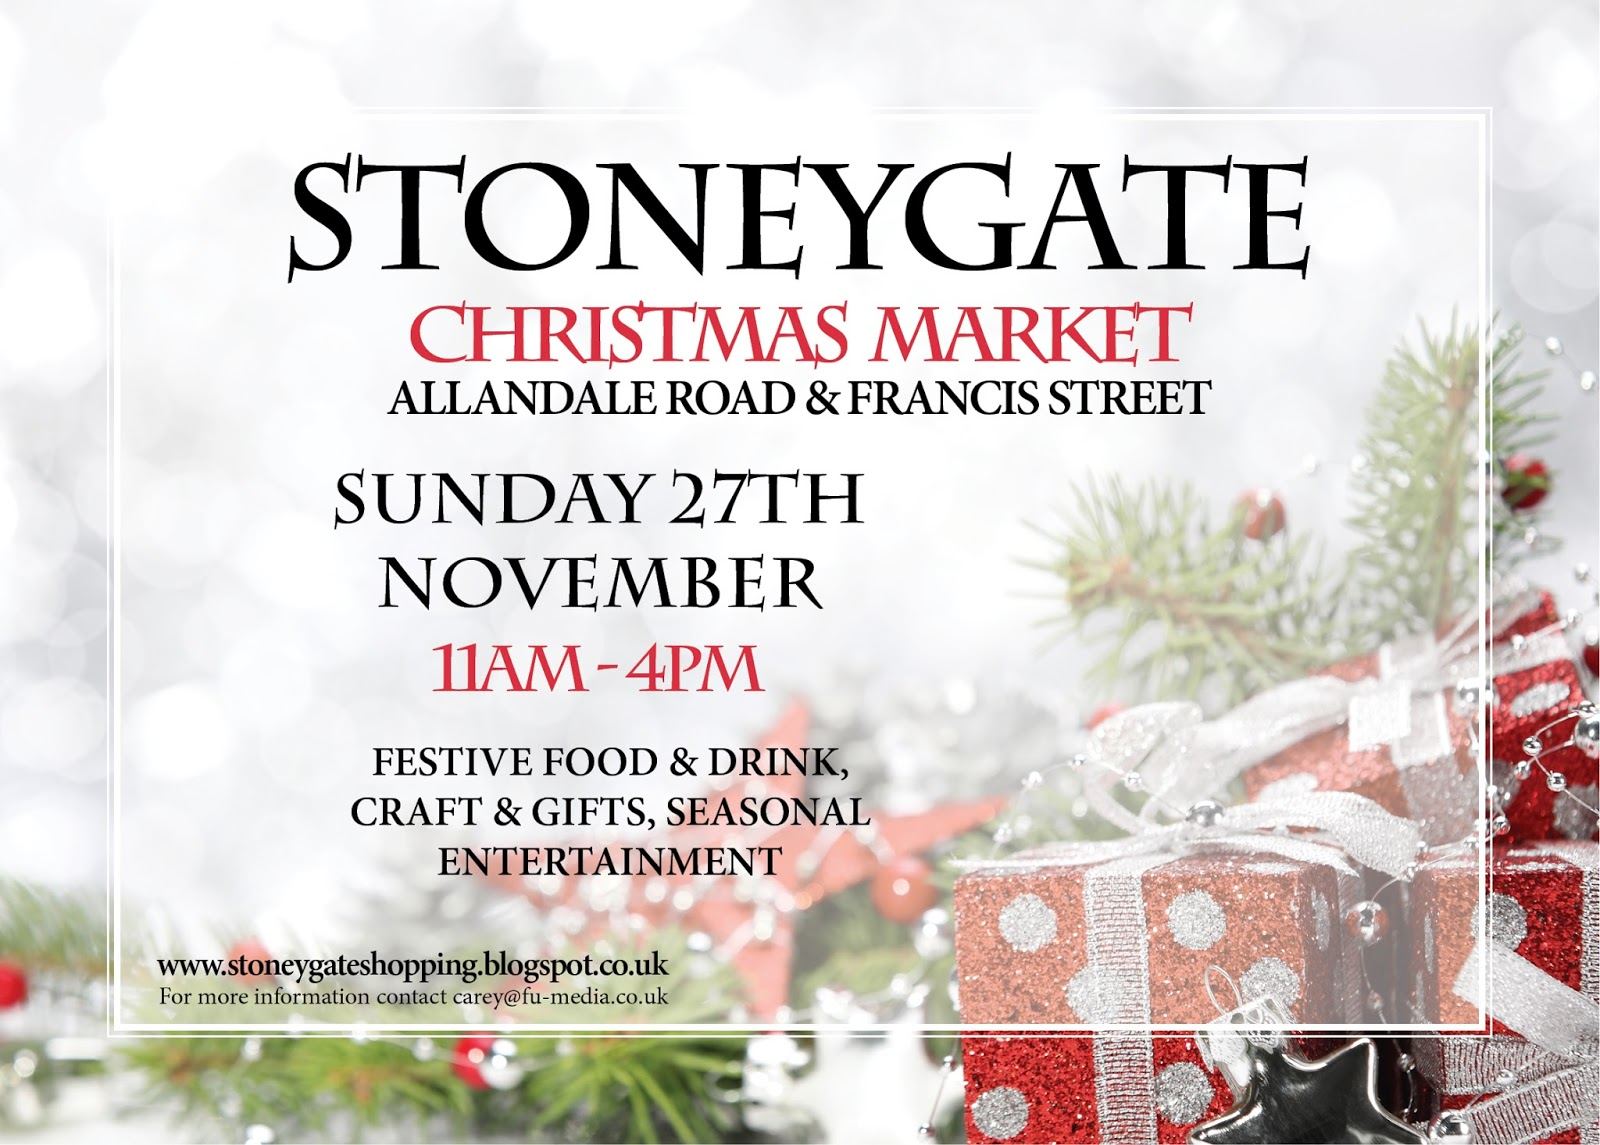 Stoneygate shops stoneygate christmas market sciox Image collections